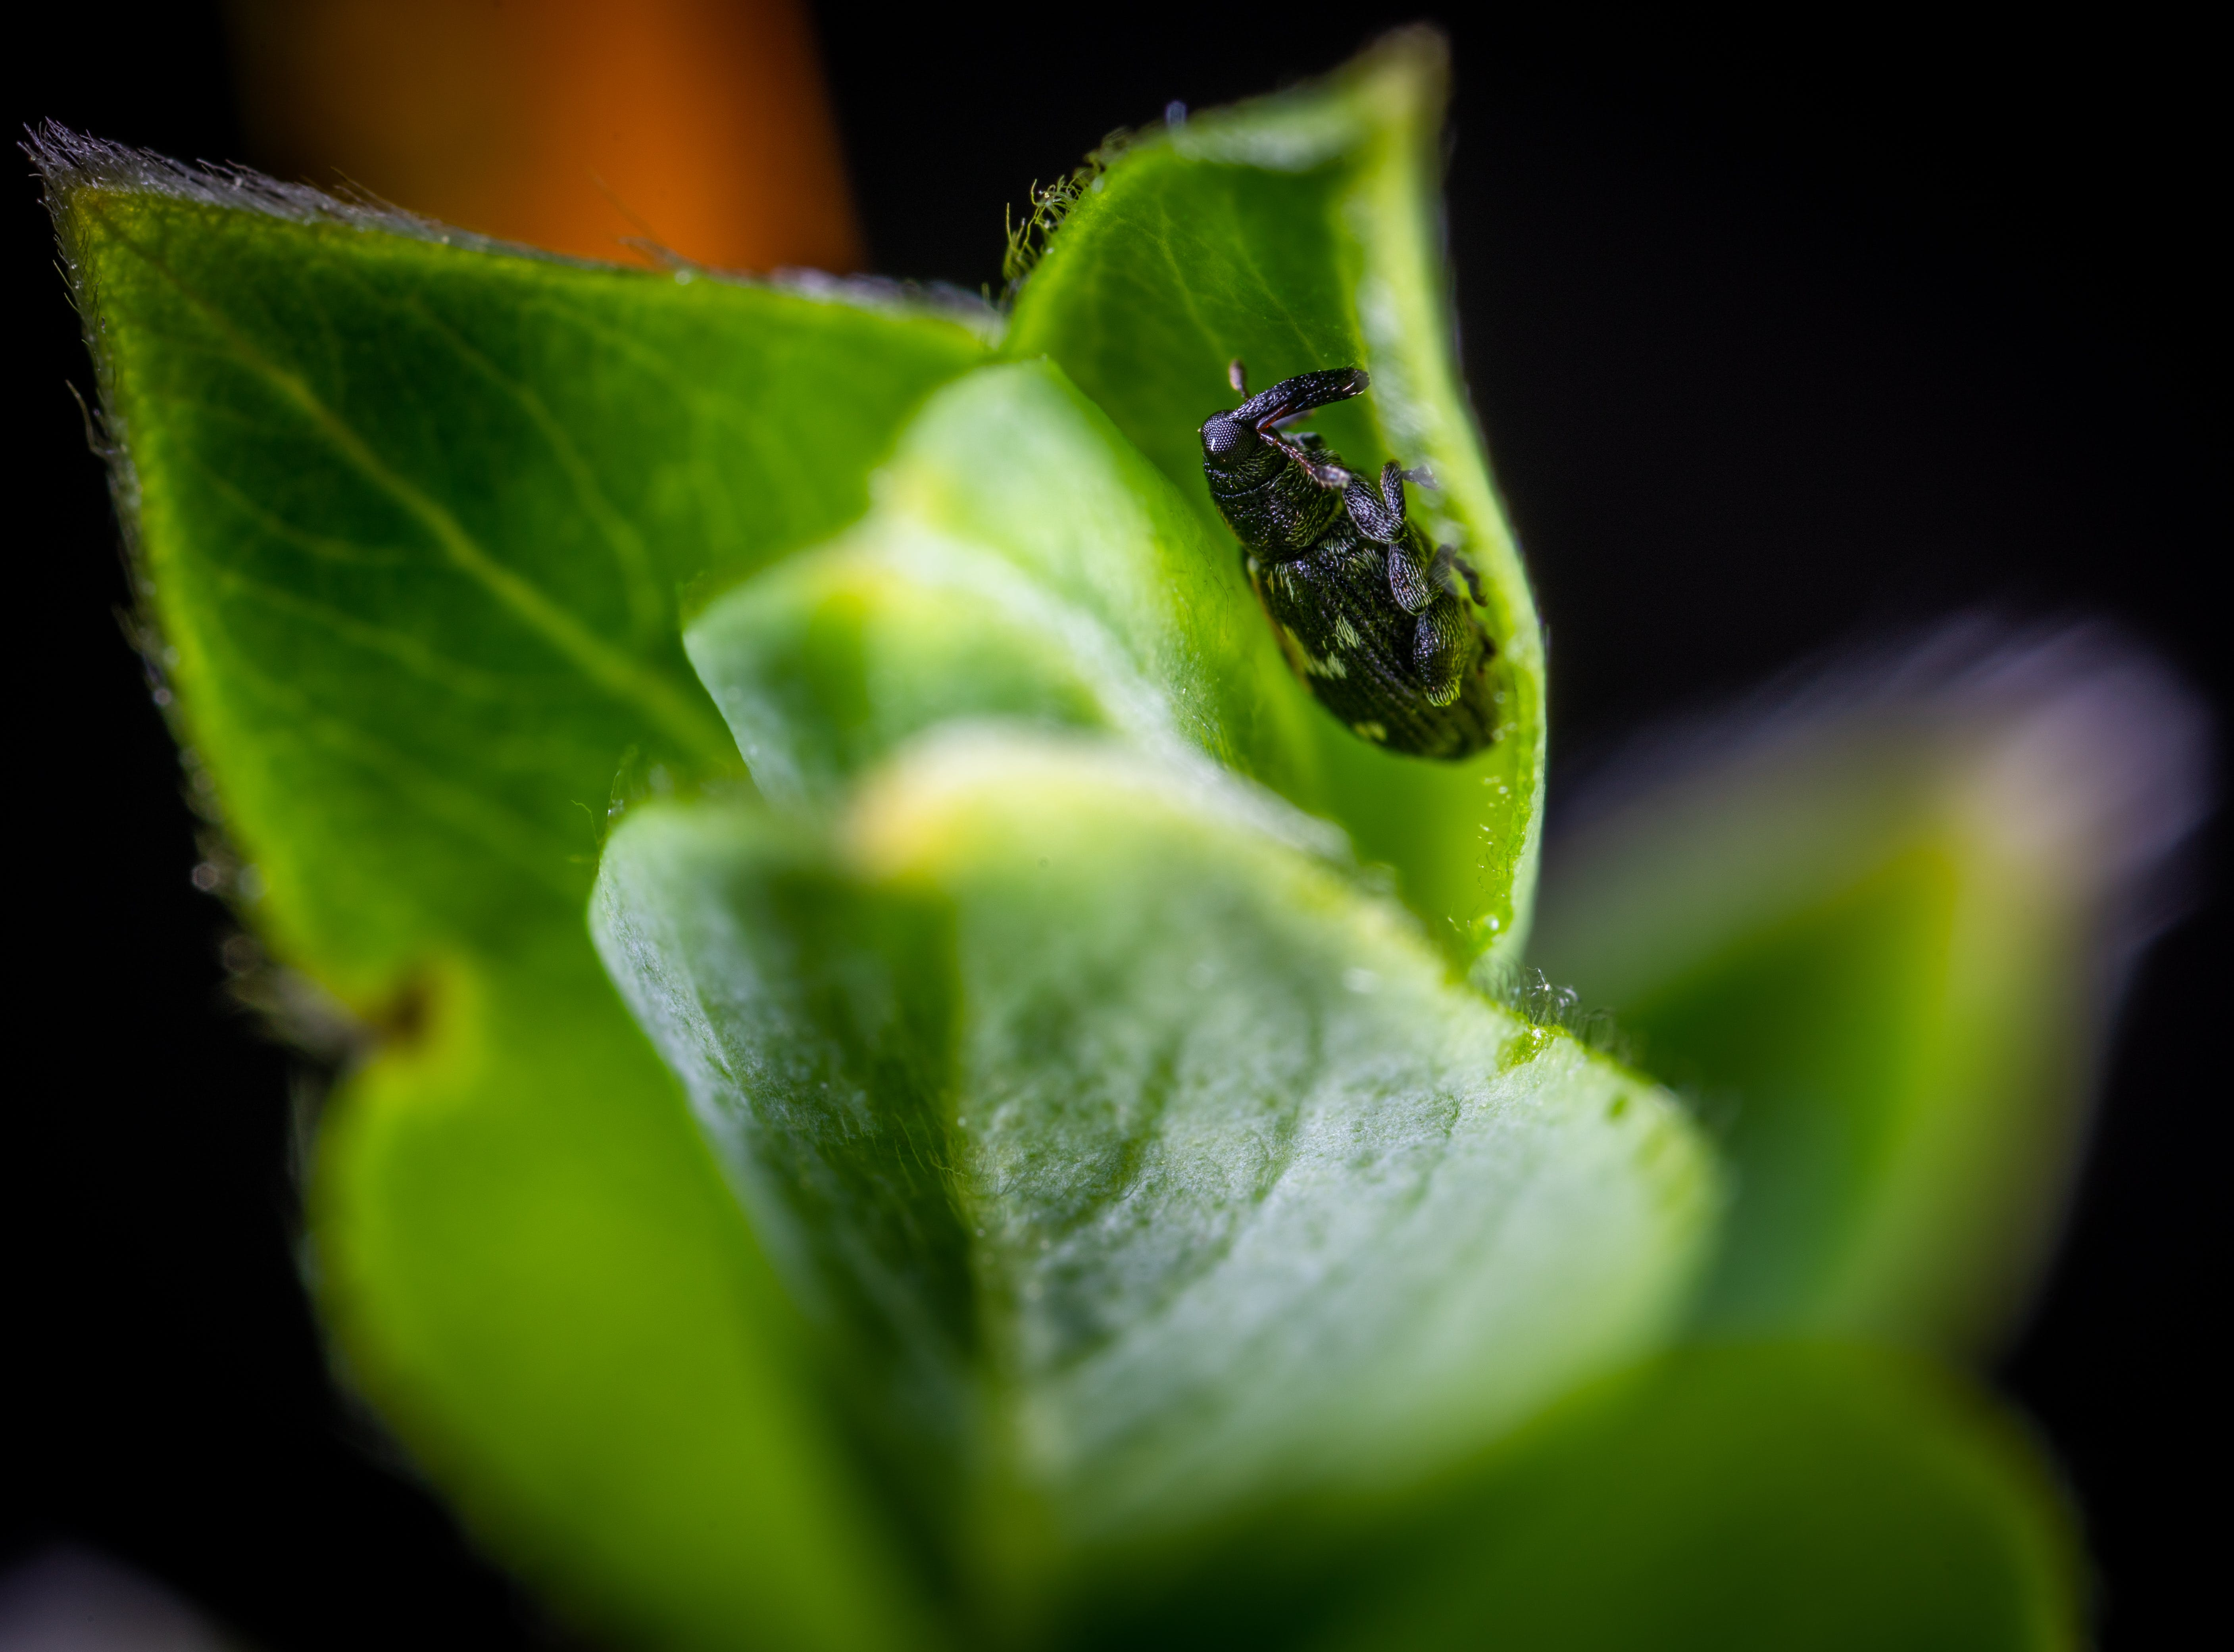 Macro Photo of Black and White Weevil on Green Leaf Plant